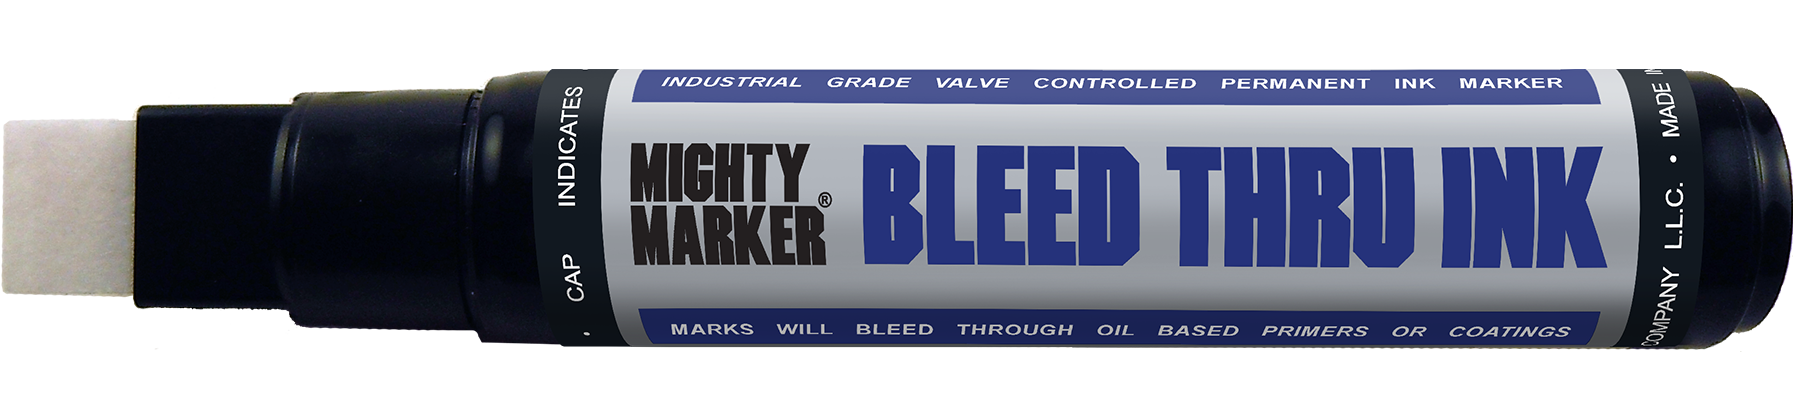 Mighty Marker Bleed-Thru Ink